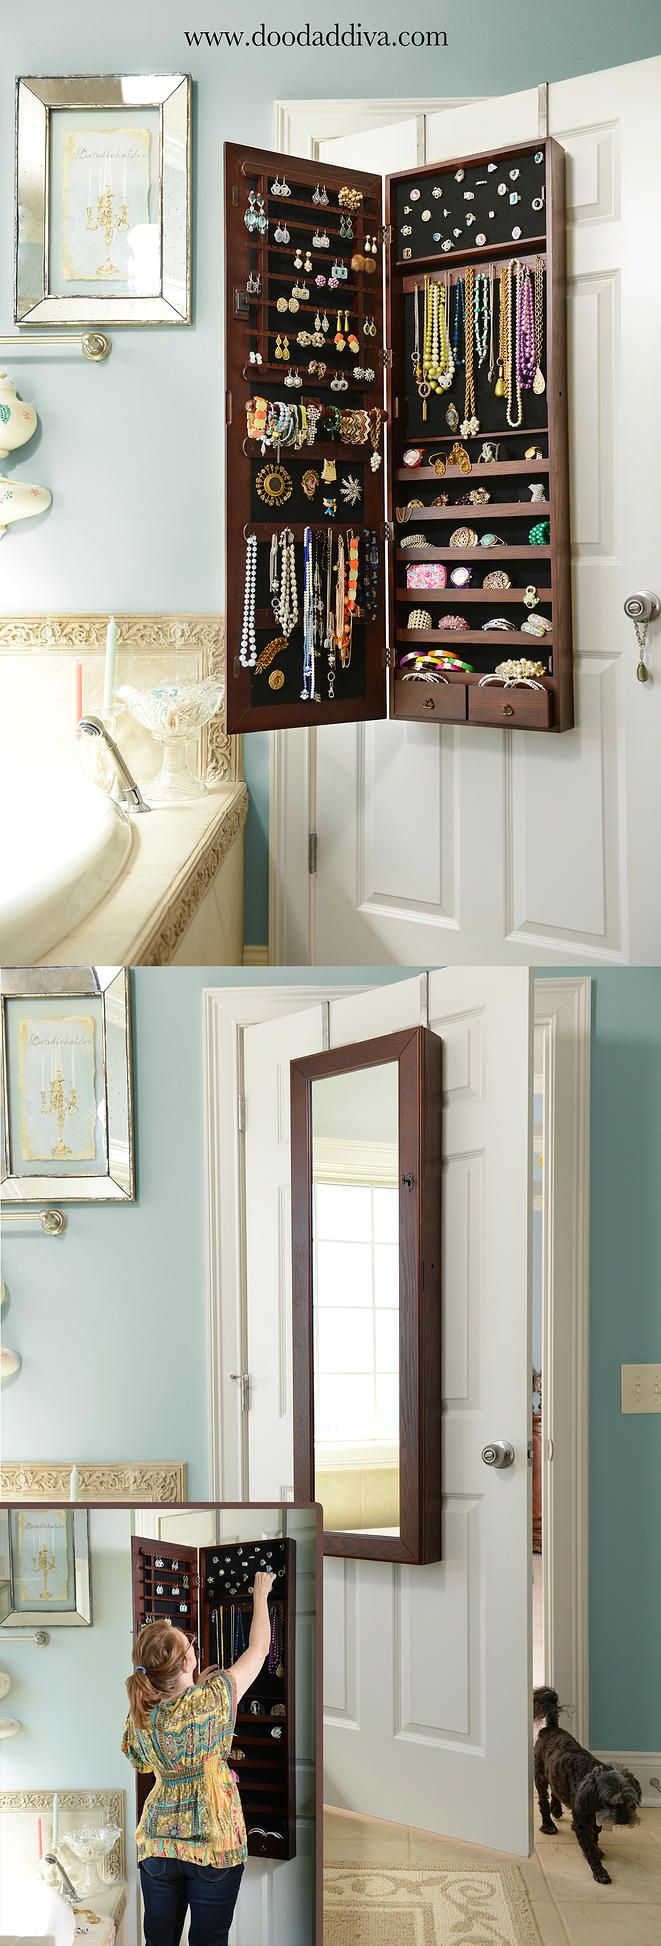 1000 Ideas About Over The Door Mirror On Pinterest Frames Ideas Picture Walls And Small